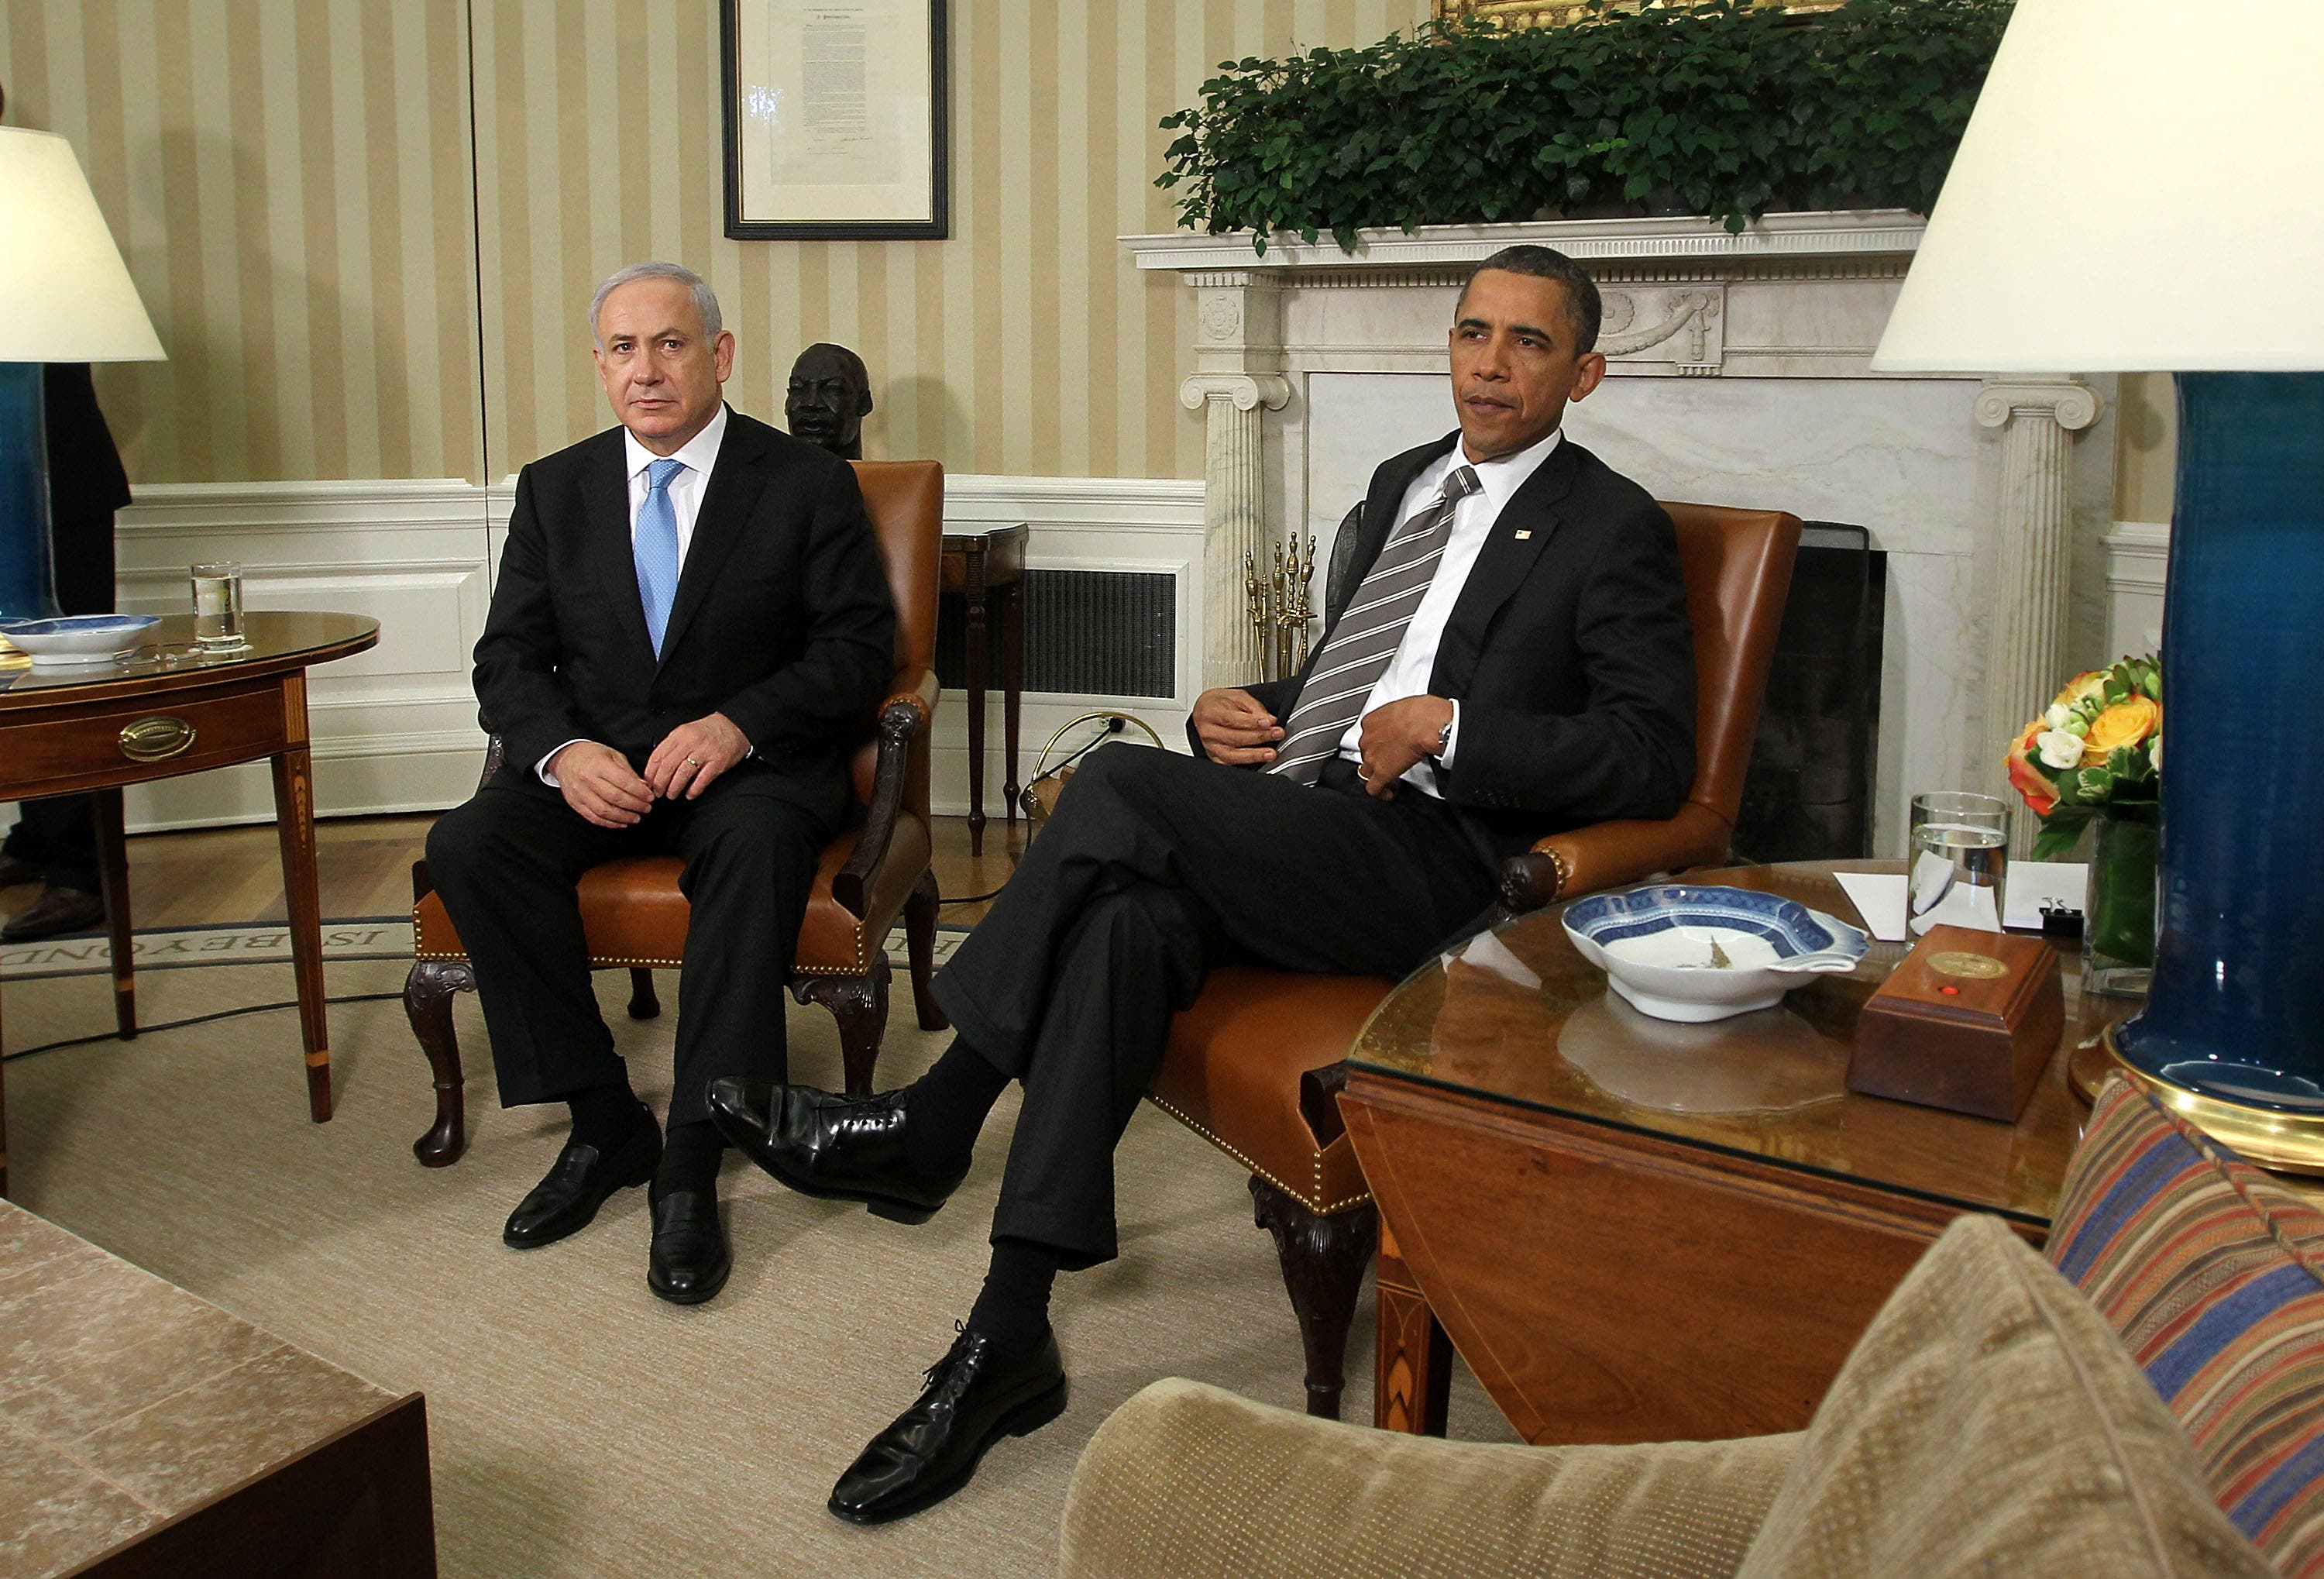 Obama's hospitality in the White House living room was spent on a disagreeable and petulant guest PM Netanyahu